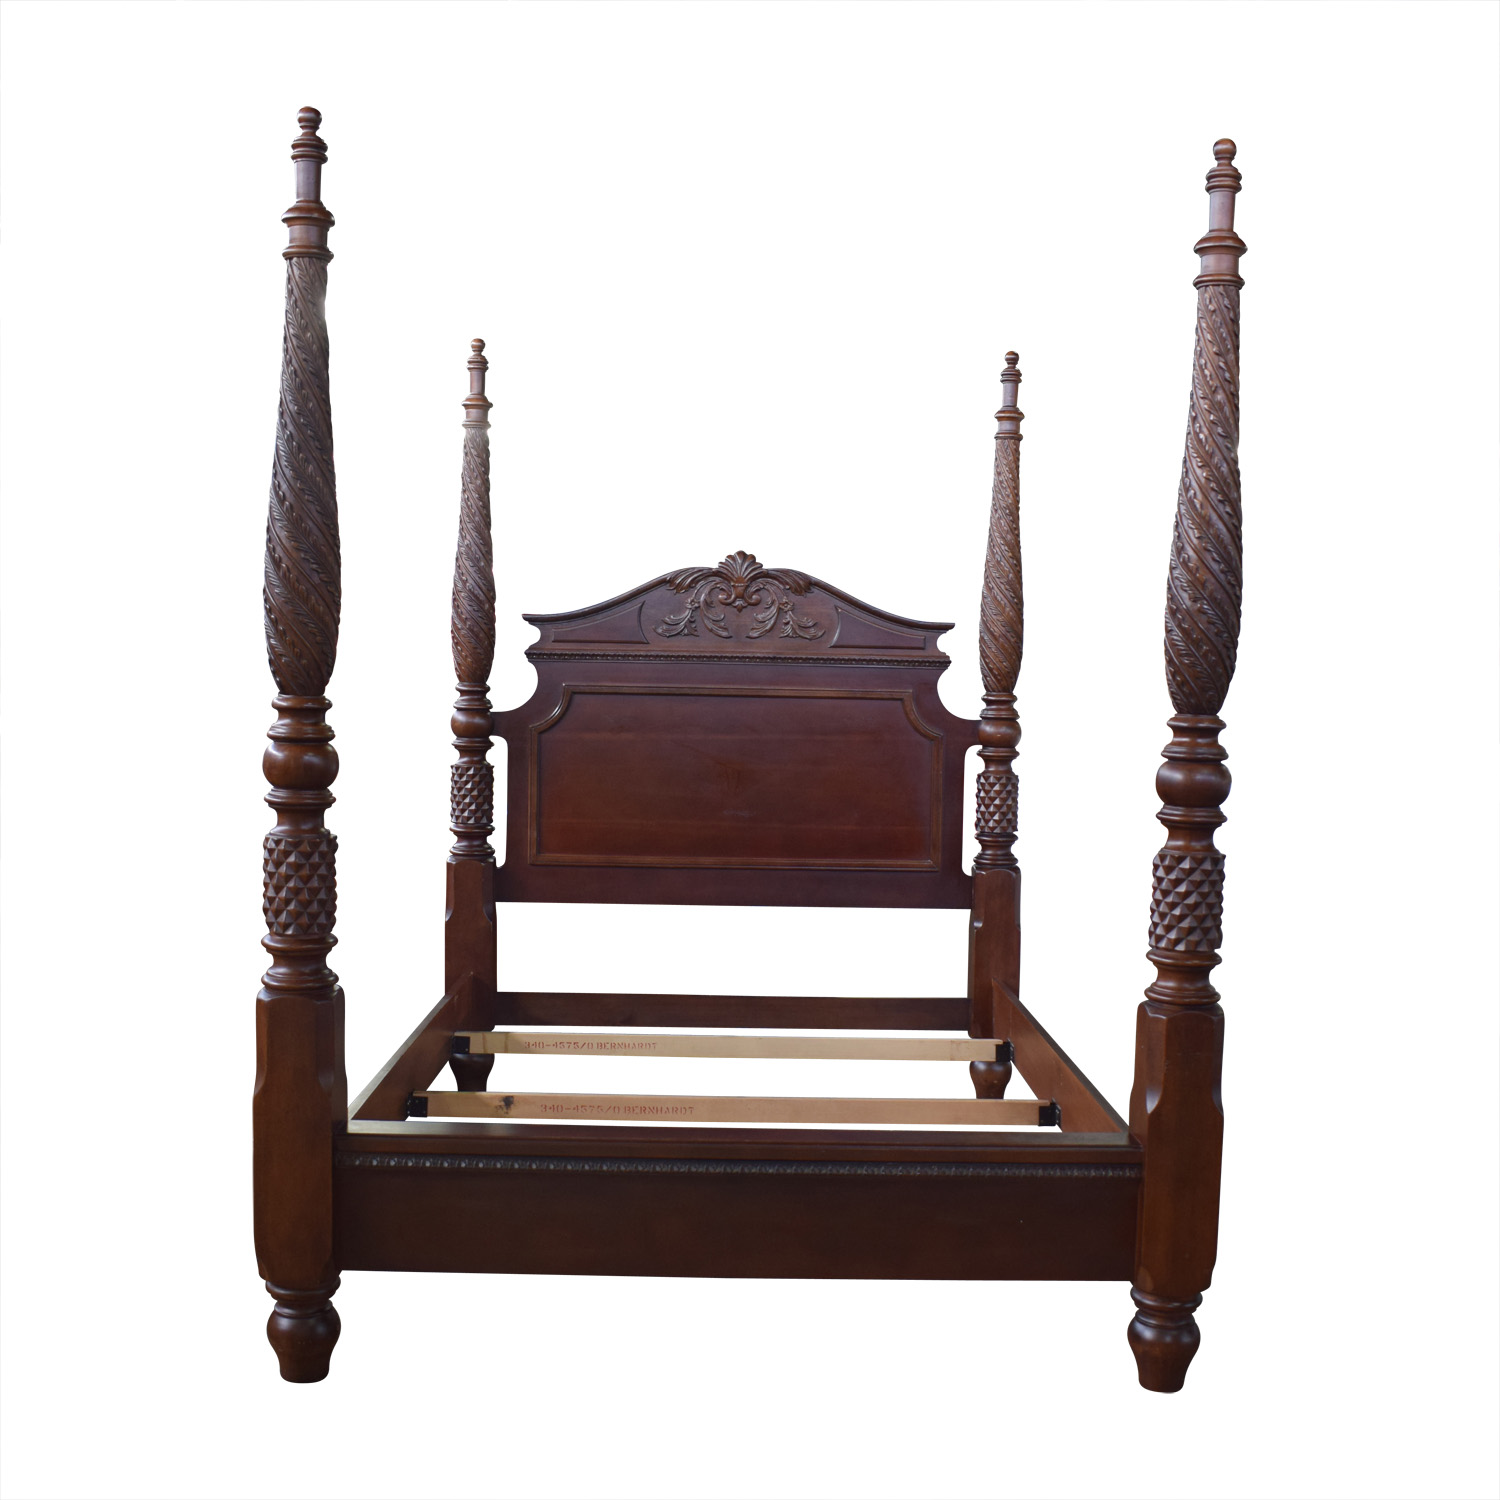 Bernhardt Bernhardt Carved Mahogany Queen Bed second hand